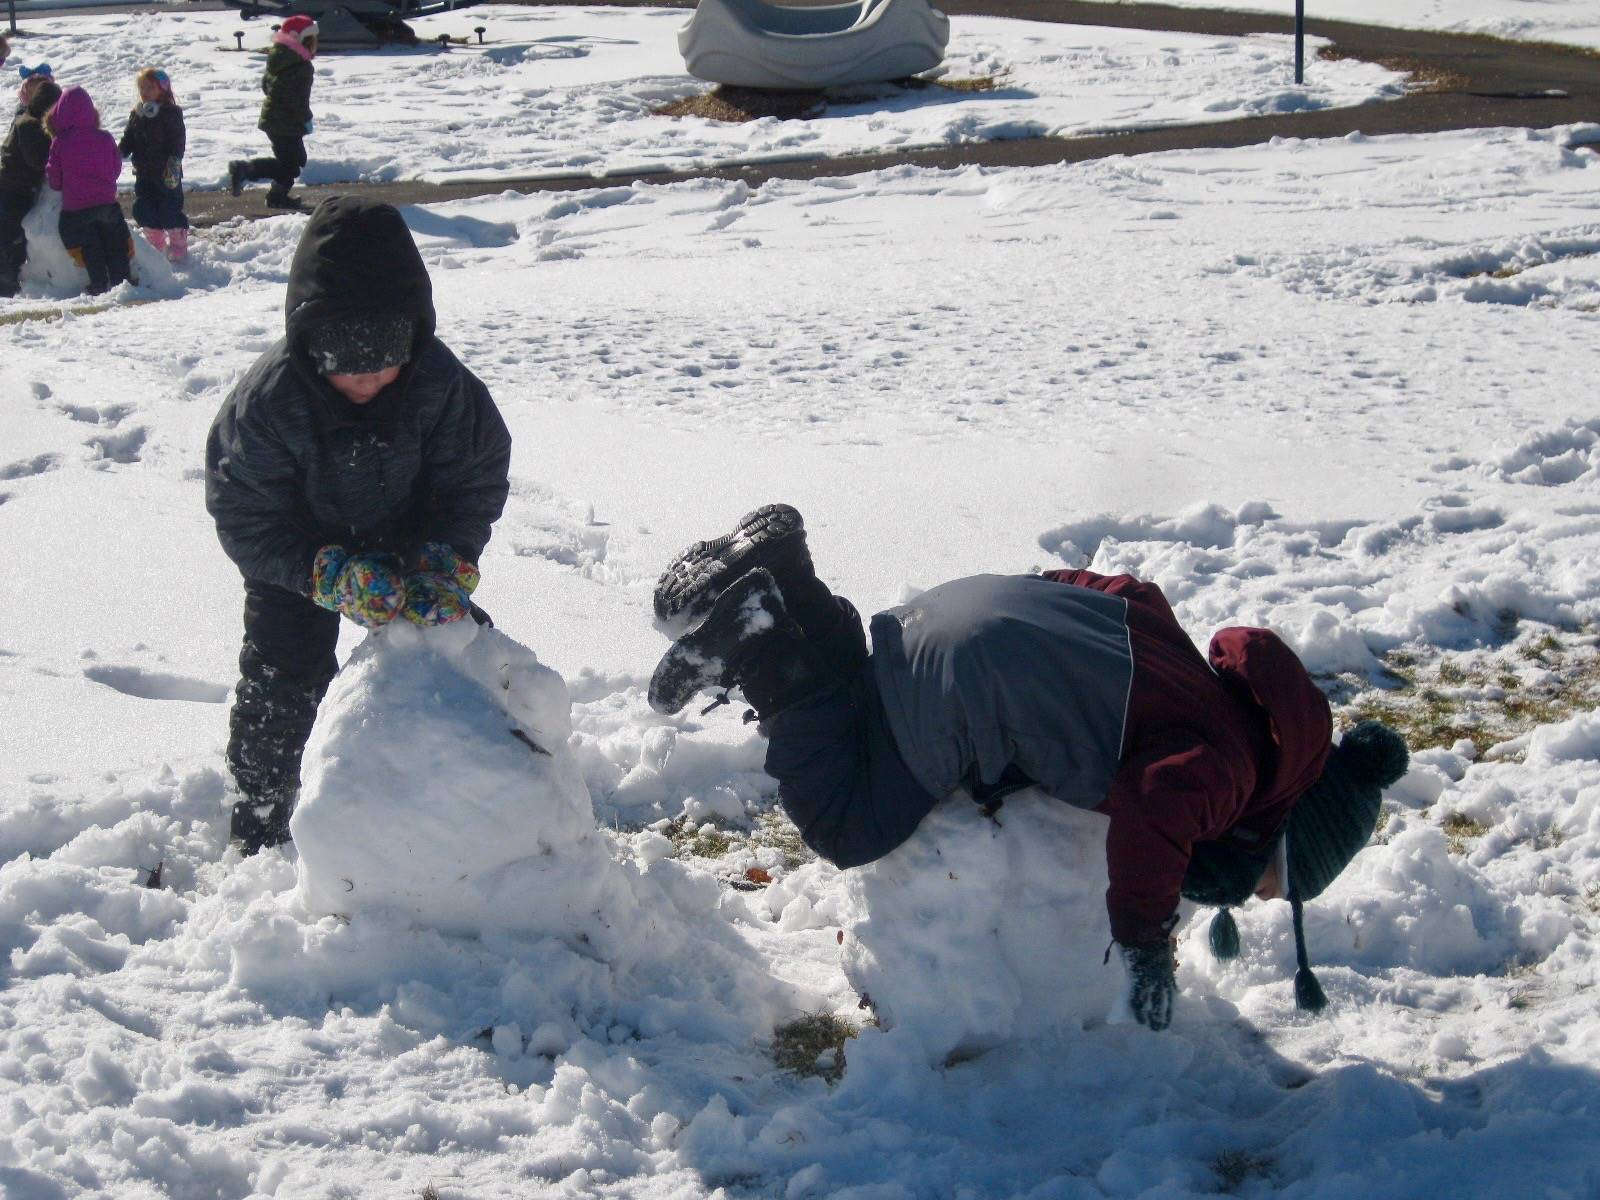 2 students climbing on giant snowballs.